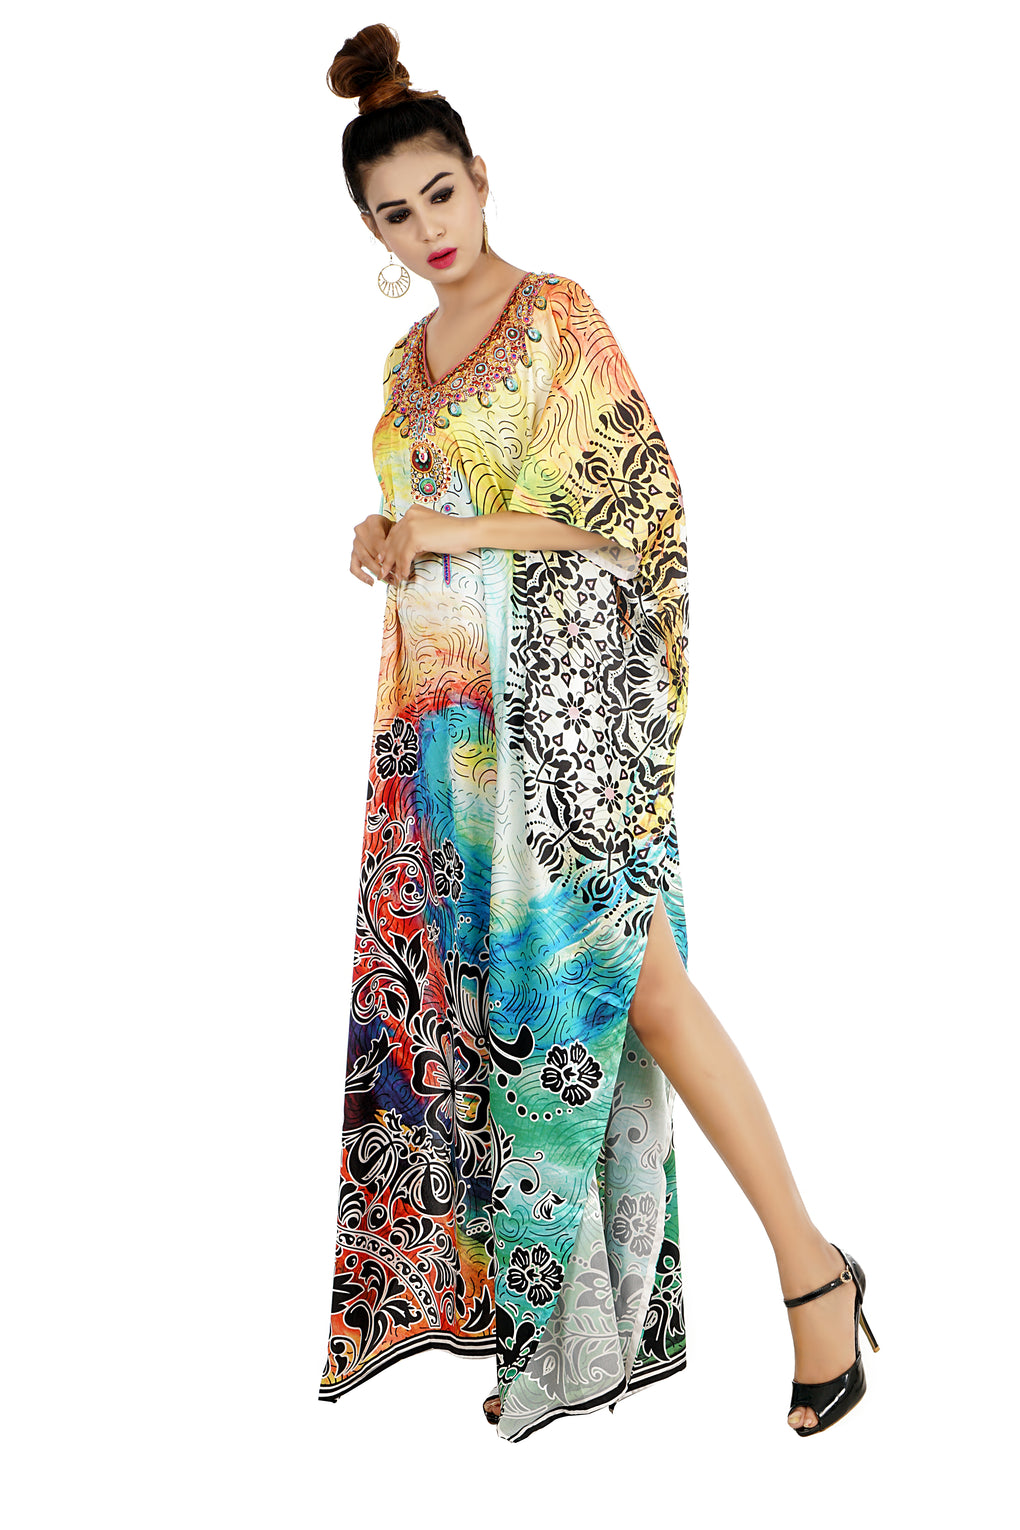 Resort Wear kaftan dress for beaded/one piece jeweled full length kaftan/long kaftans/luxury resort wear caftan plus 98 - Silk kaftan